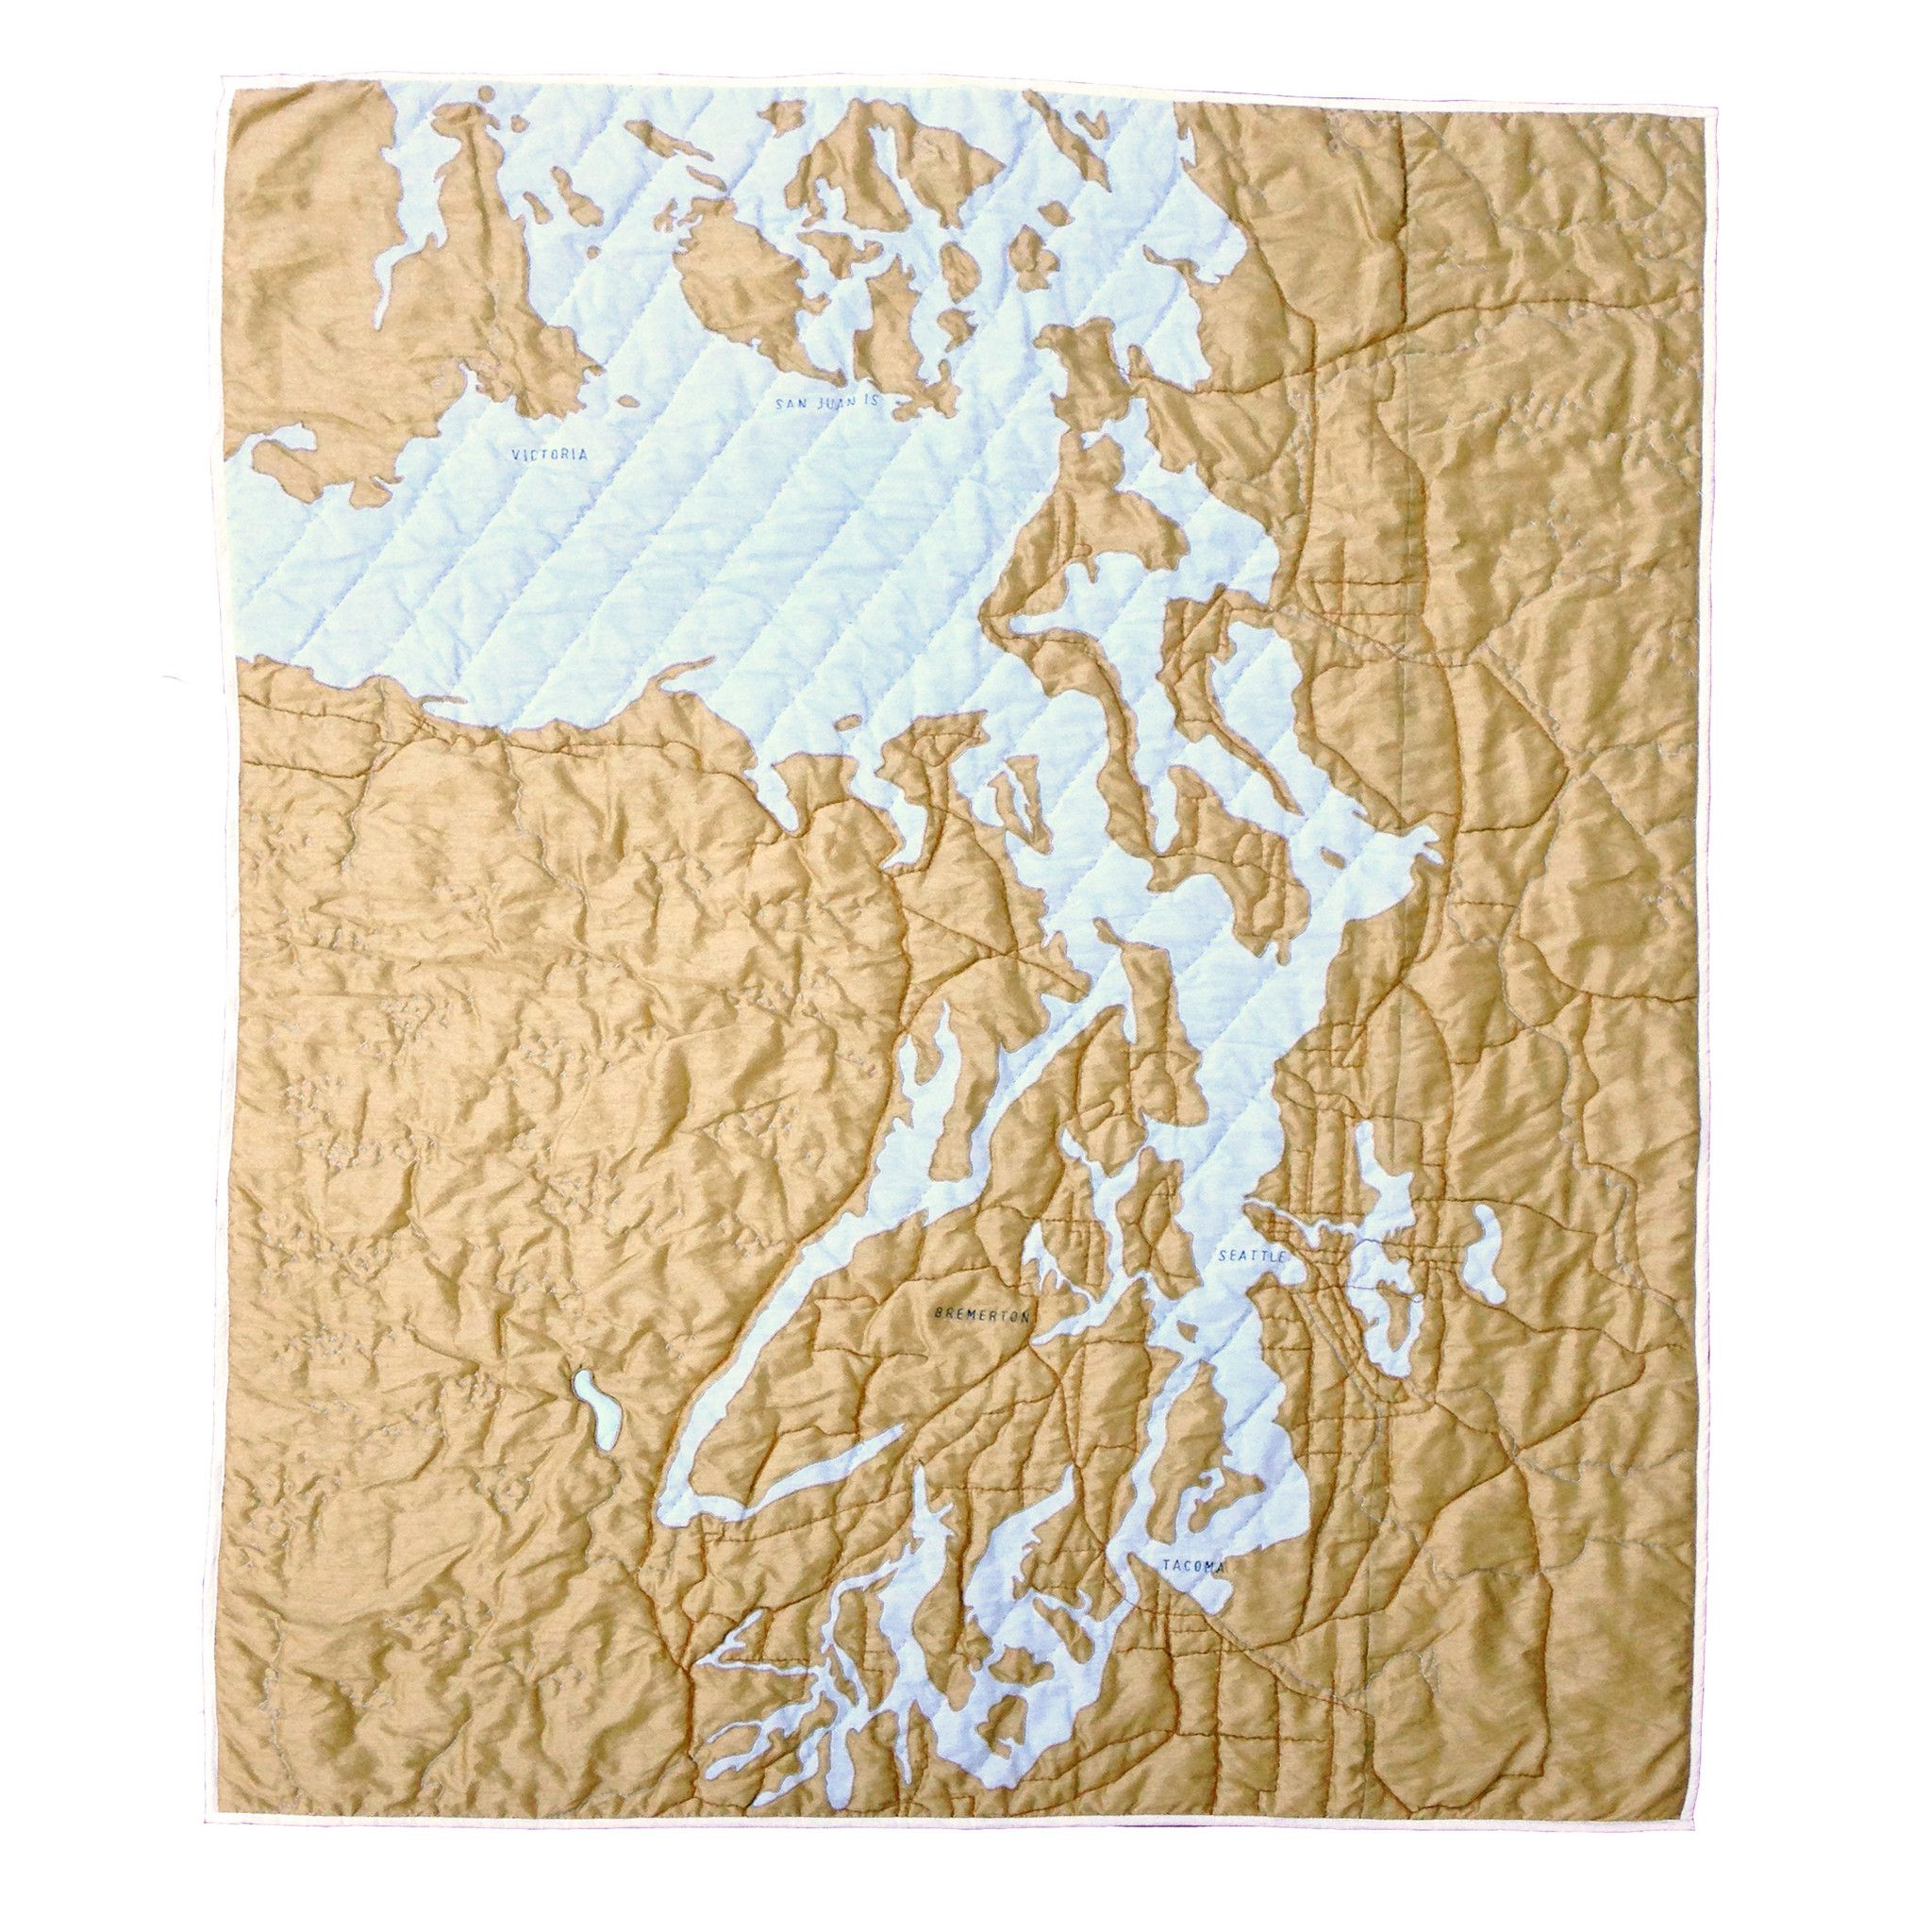 Puget Sound Quilt Coastal quilts, Map quilt, Unique